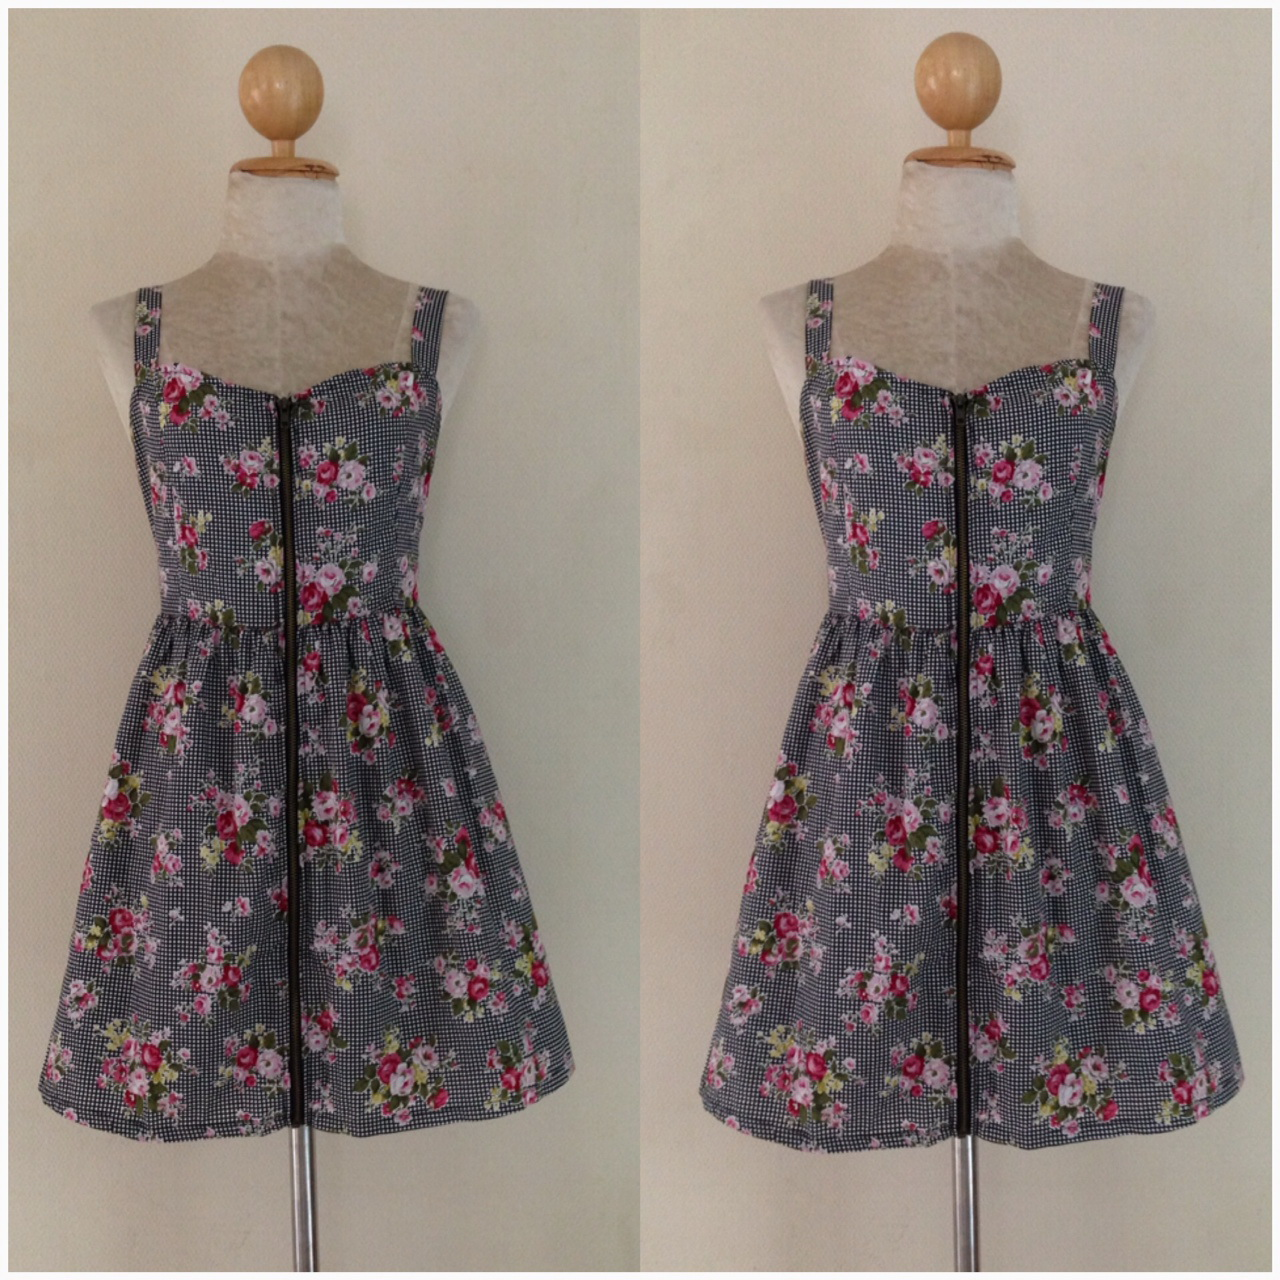 YUMI Floral Dress Uk10